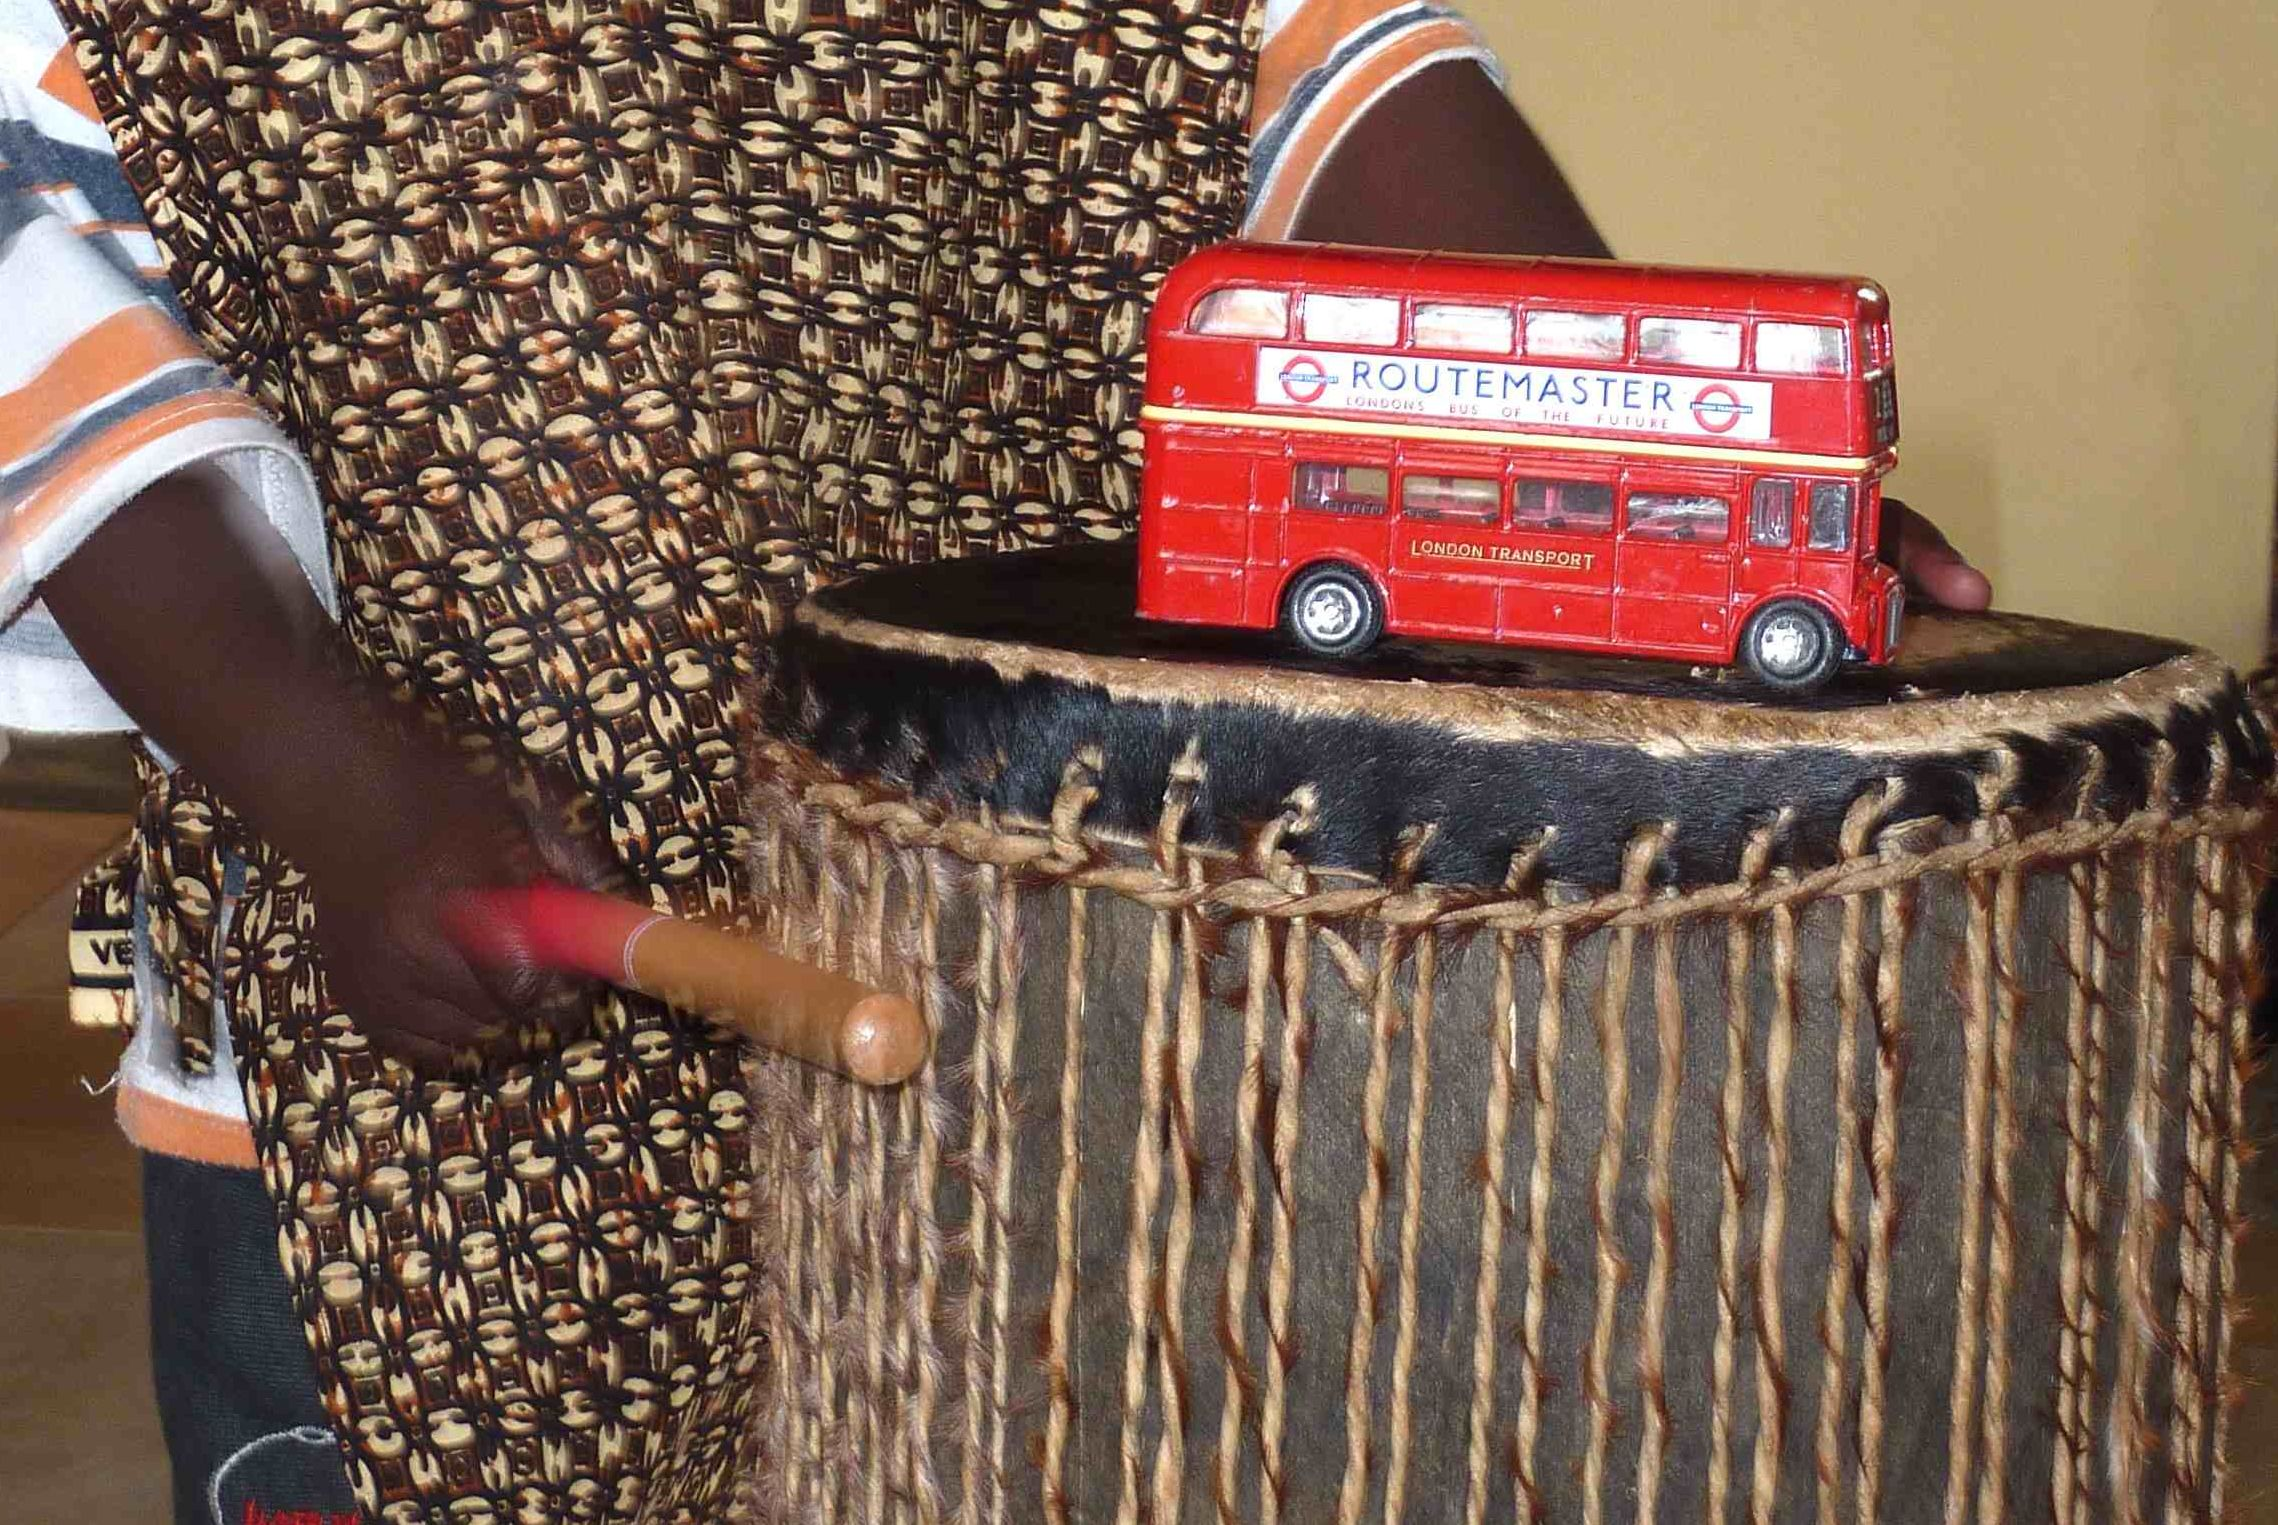 When children beat the drum, the bus jumps — a physics experiment with vibration.